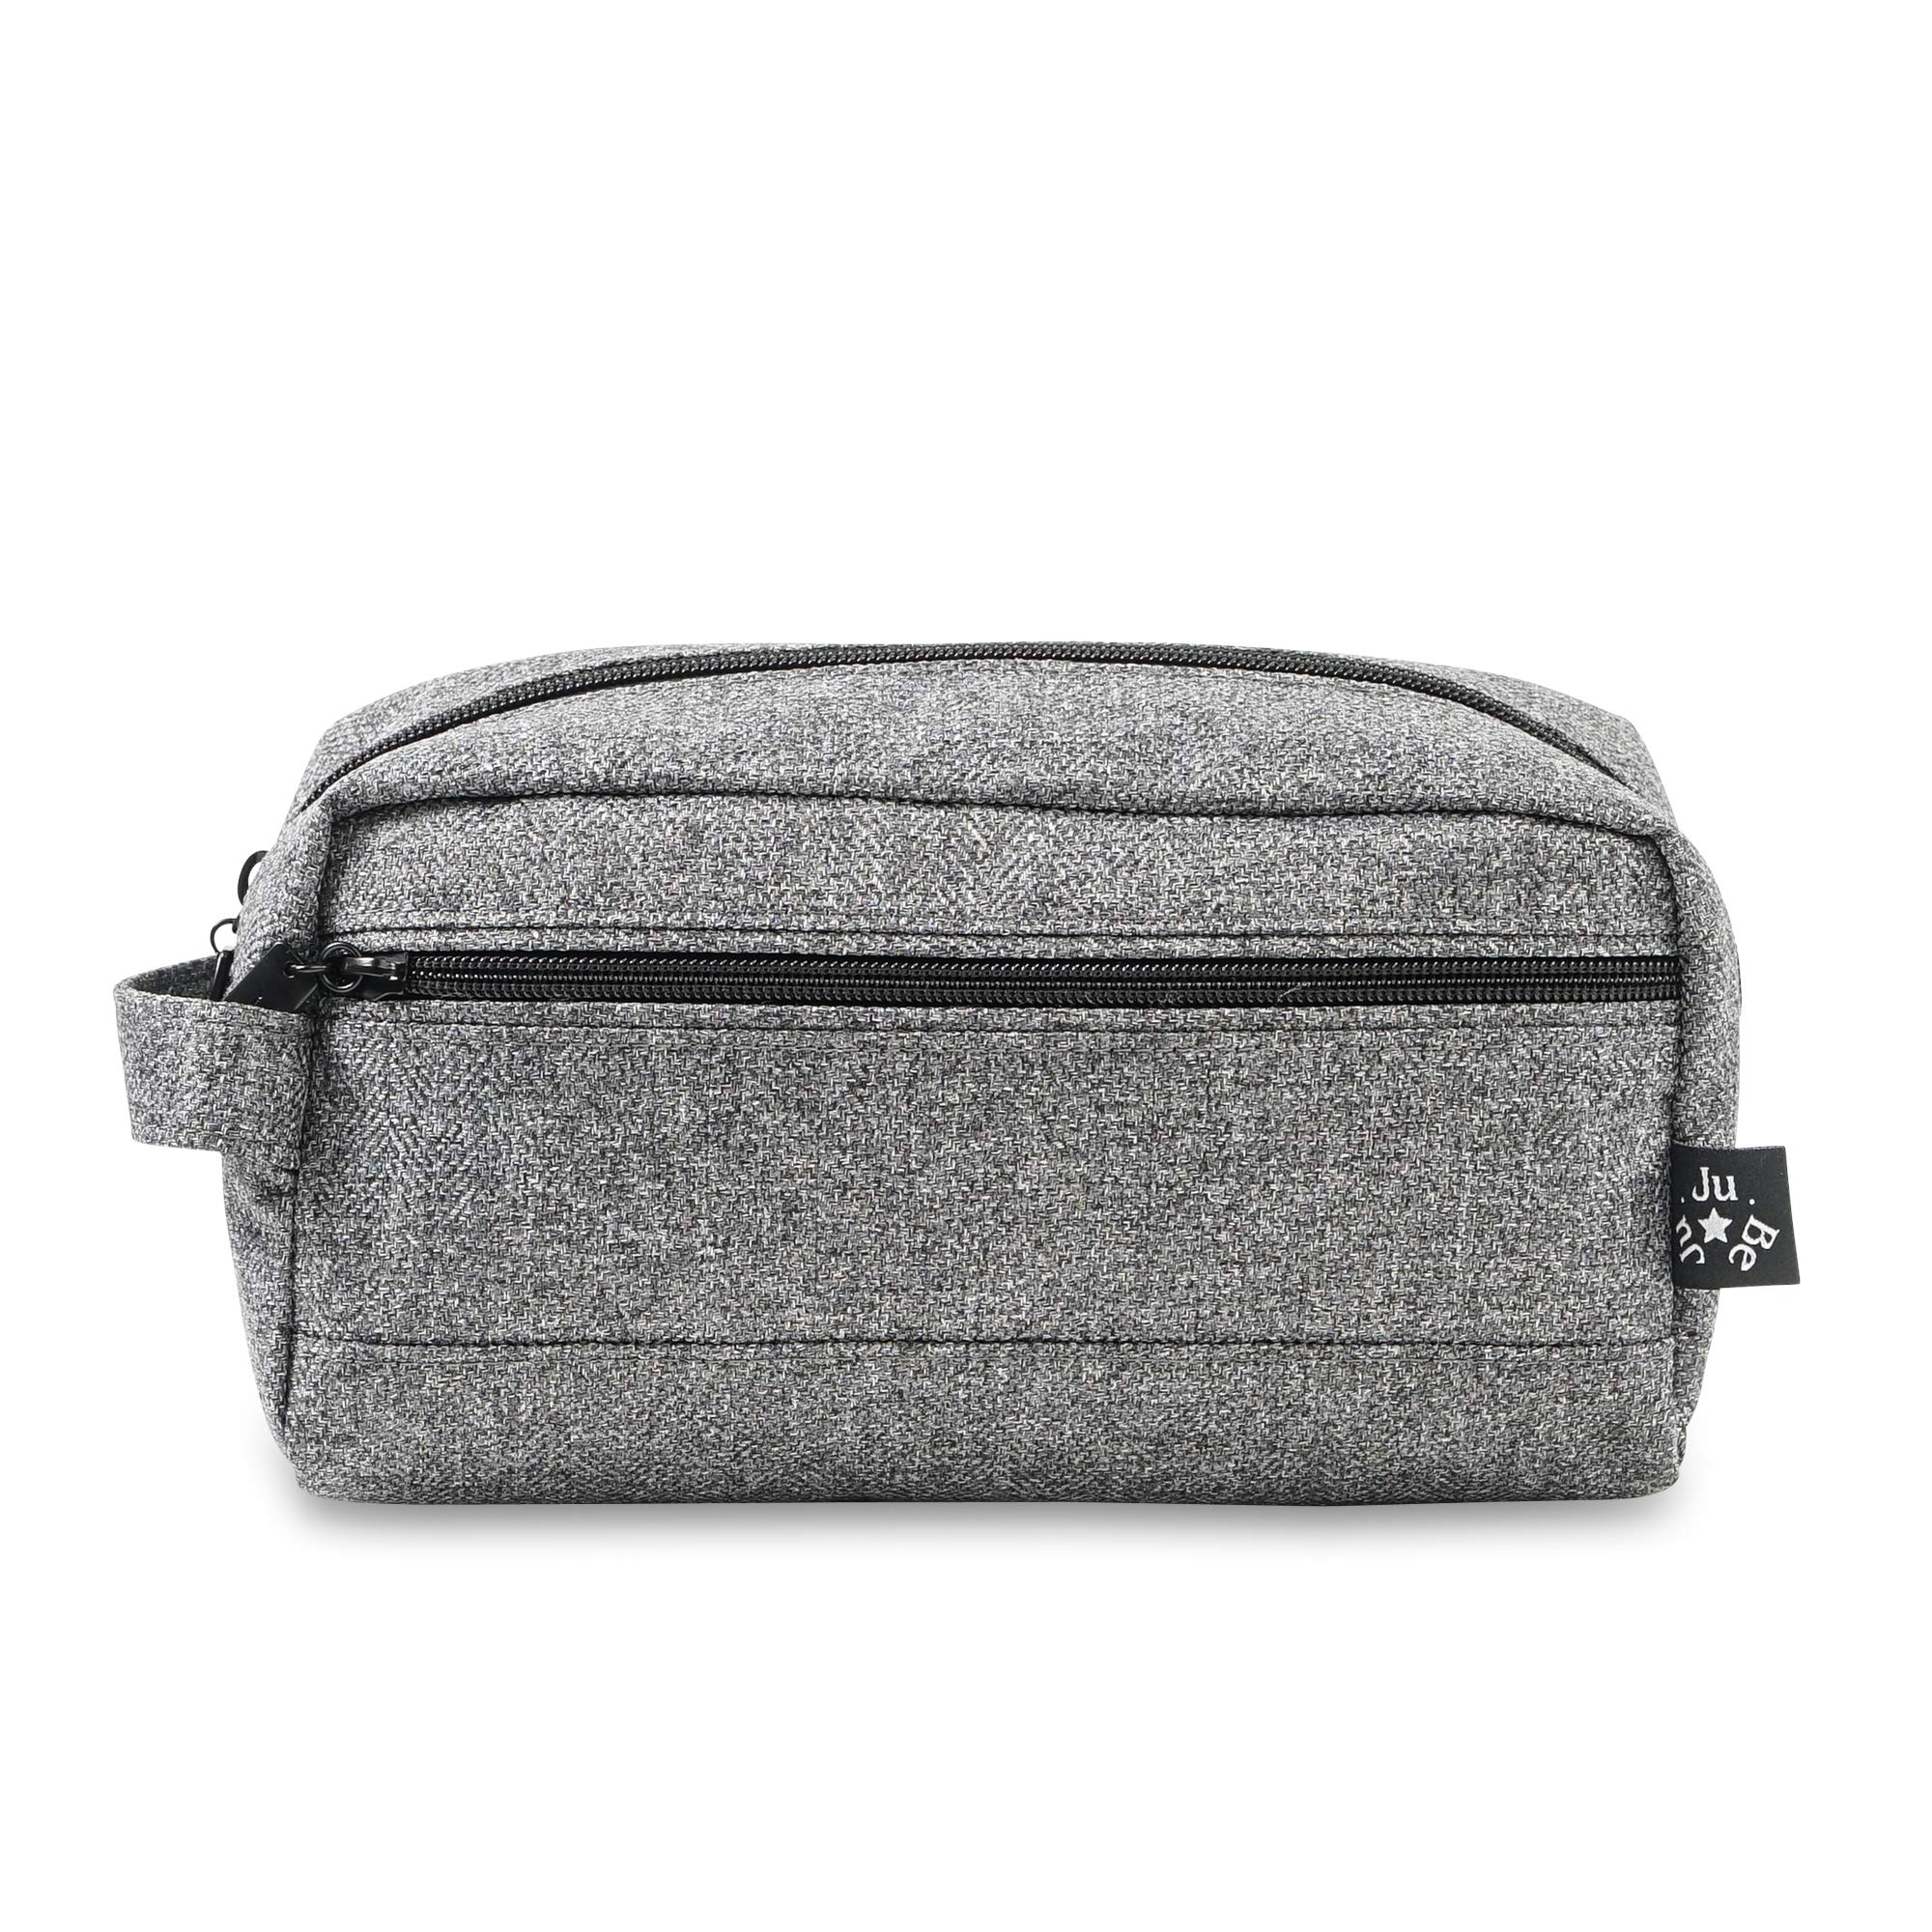 JuJuBe Be Dapper Travel Case Onyx Collection, Gray Matter by JuJuBe